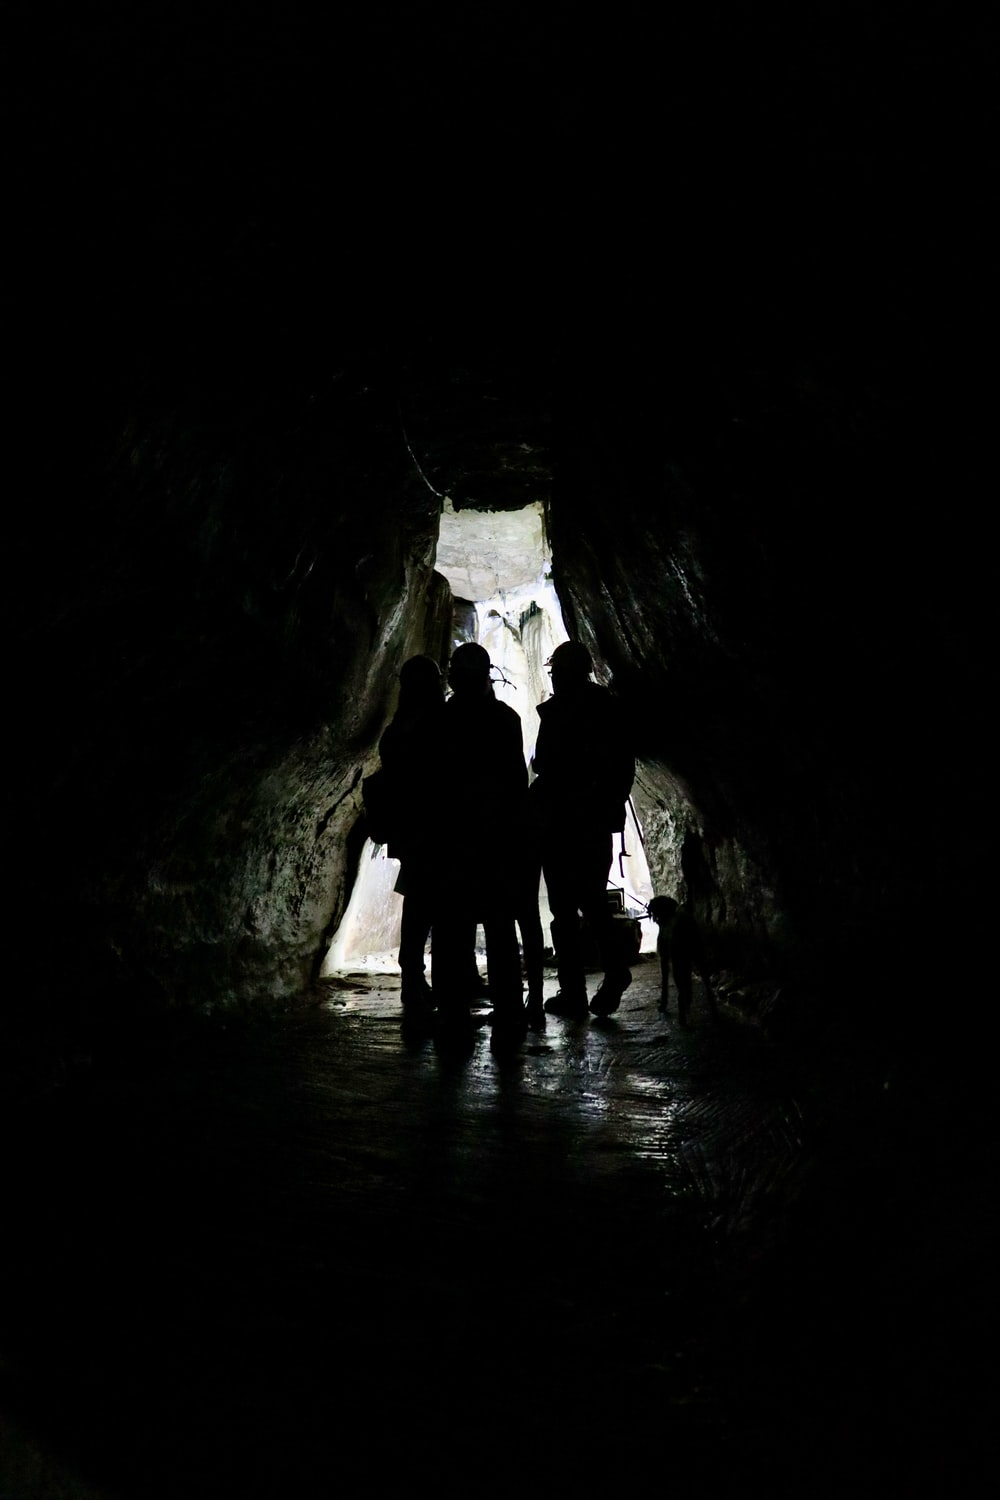 2 men in cave during daytime